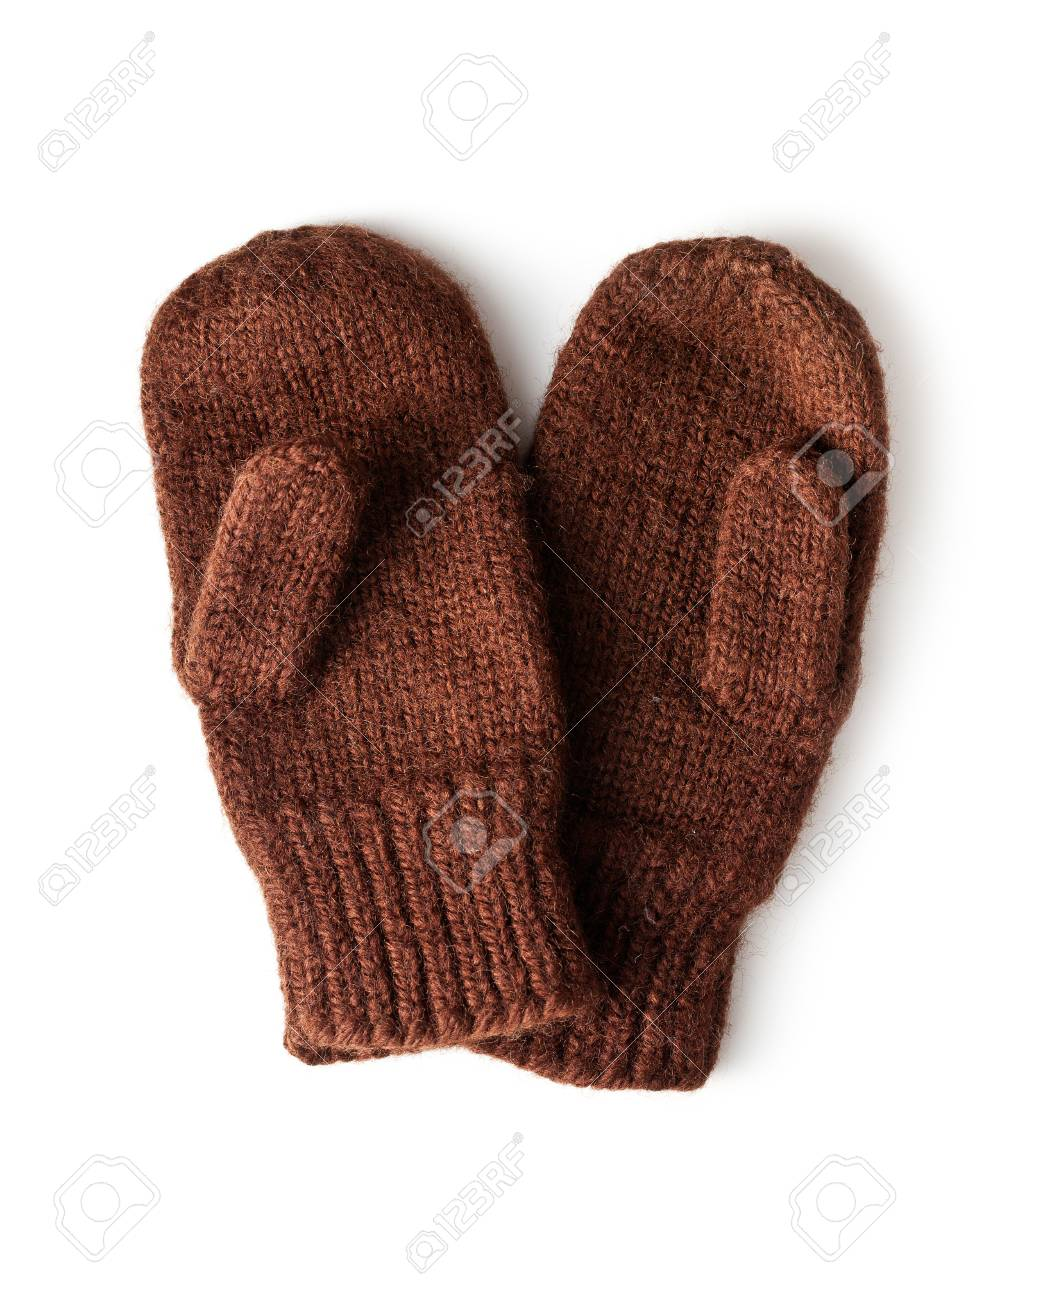 aliexpress shades of separation shoes Brown Knitted Mittens On White Background Stock Photo, Picture And ...